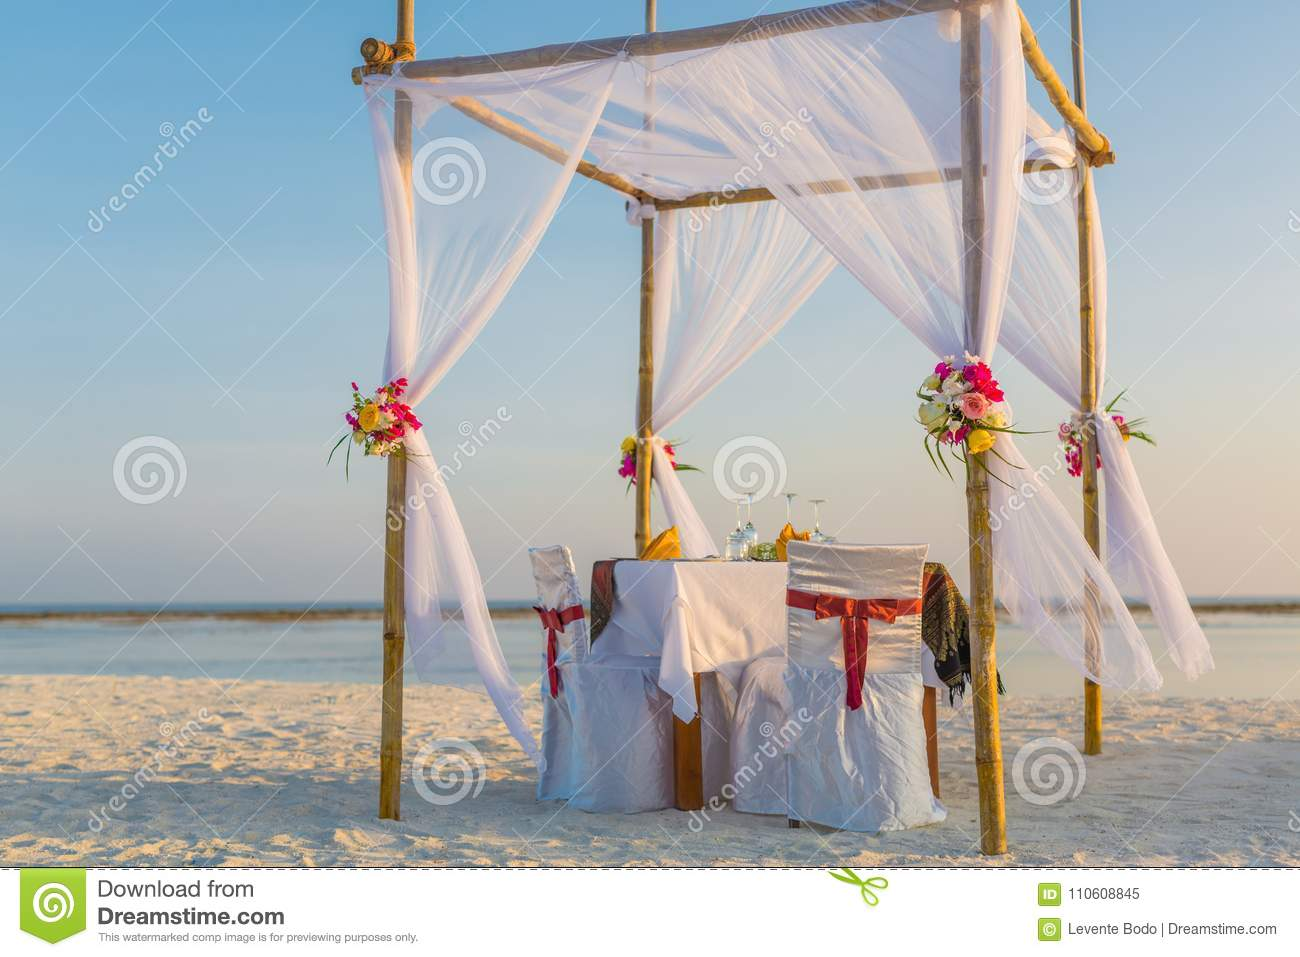 Romantic Beach Wedding And Wedding Arch Background Concept Stock